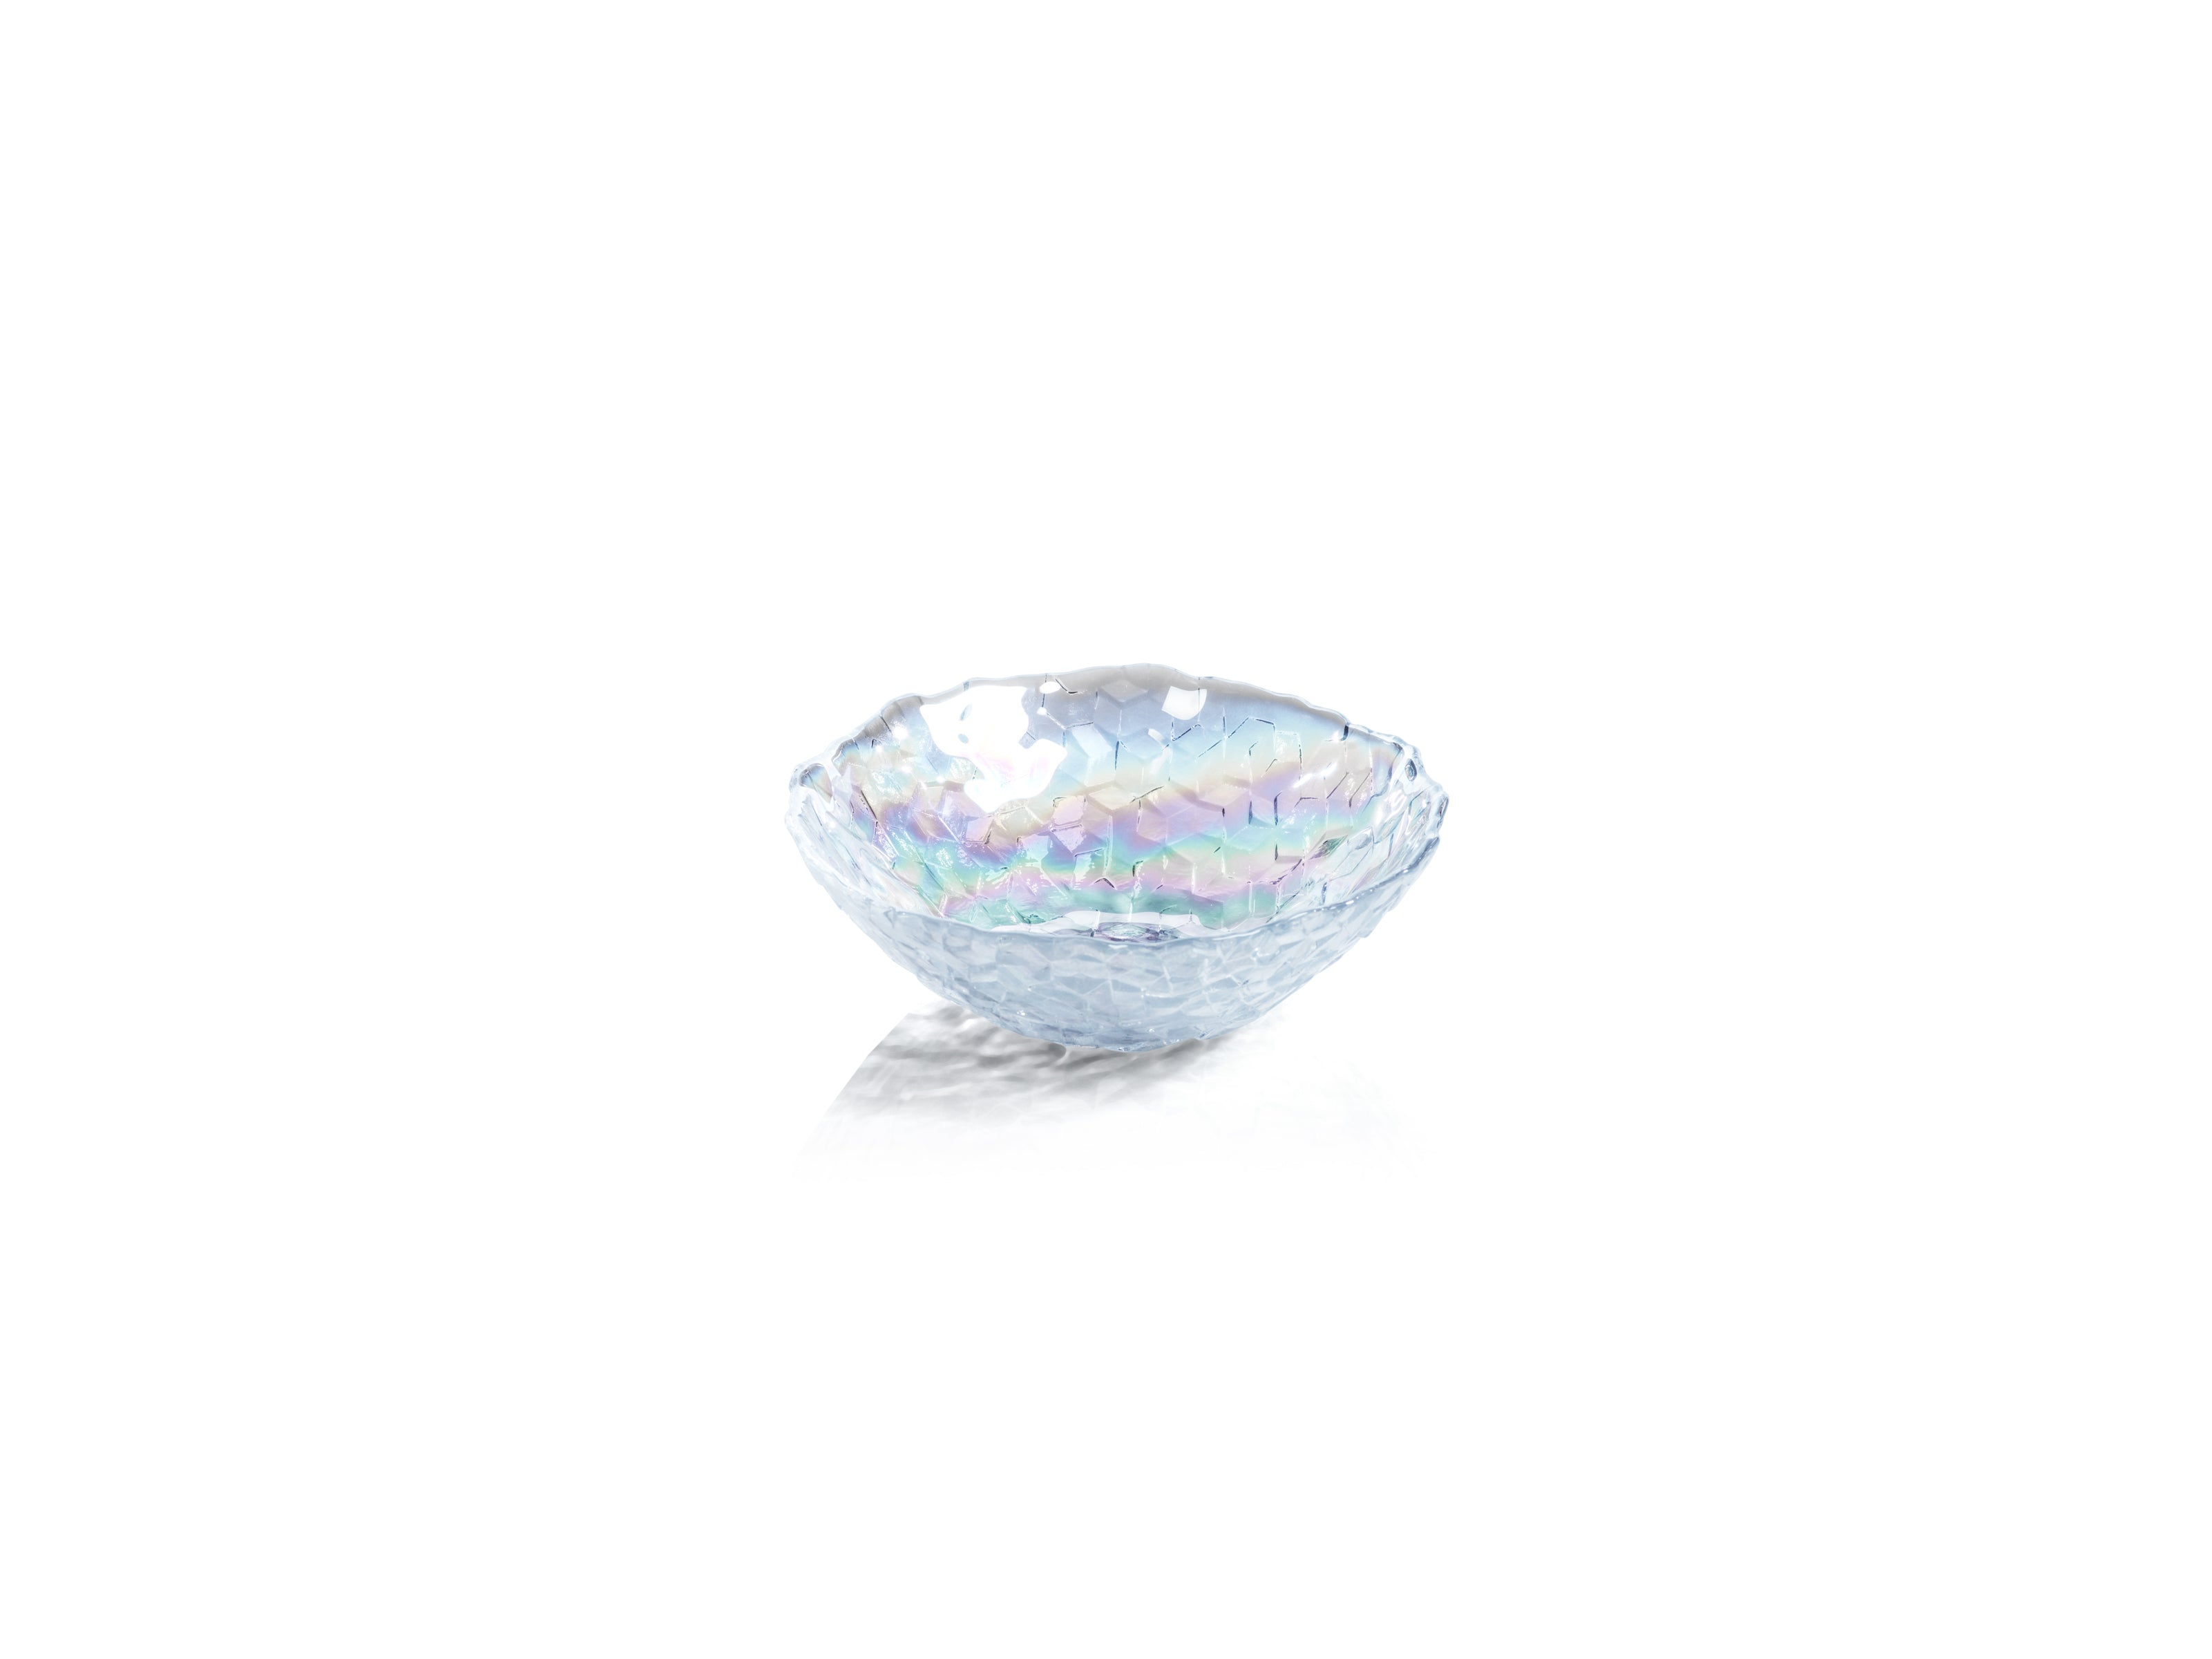 Cubic Iris Luster Bowls - CARLYLE AVENUE